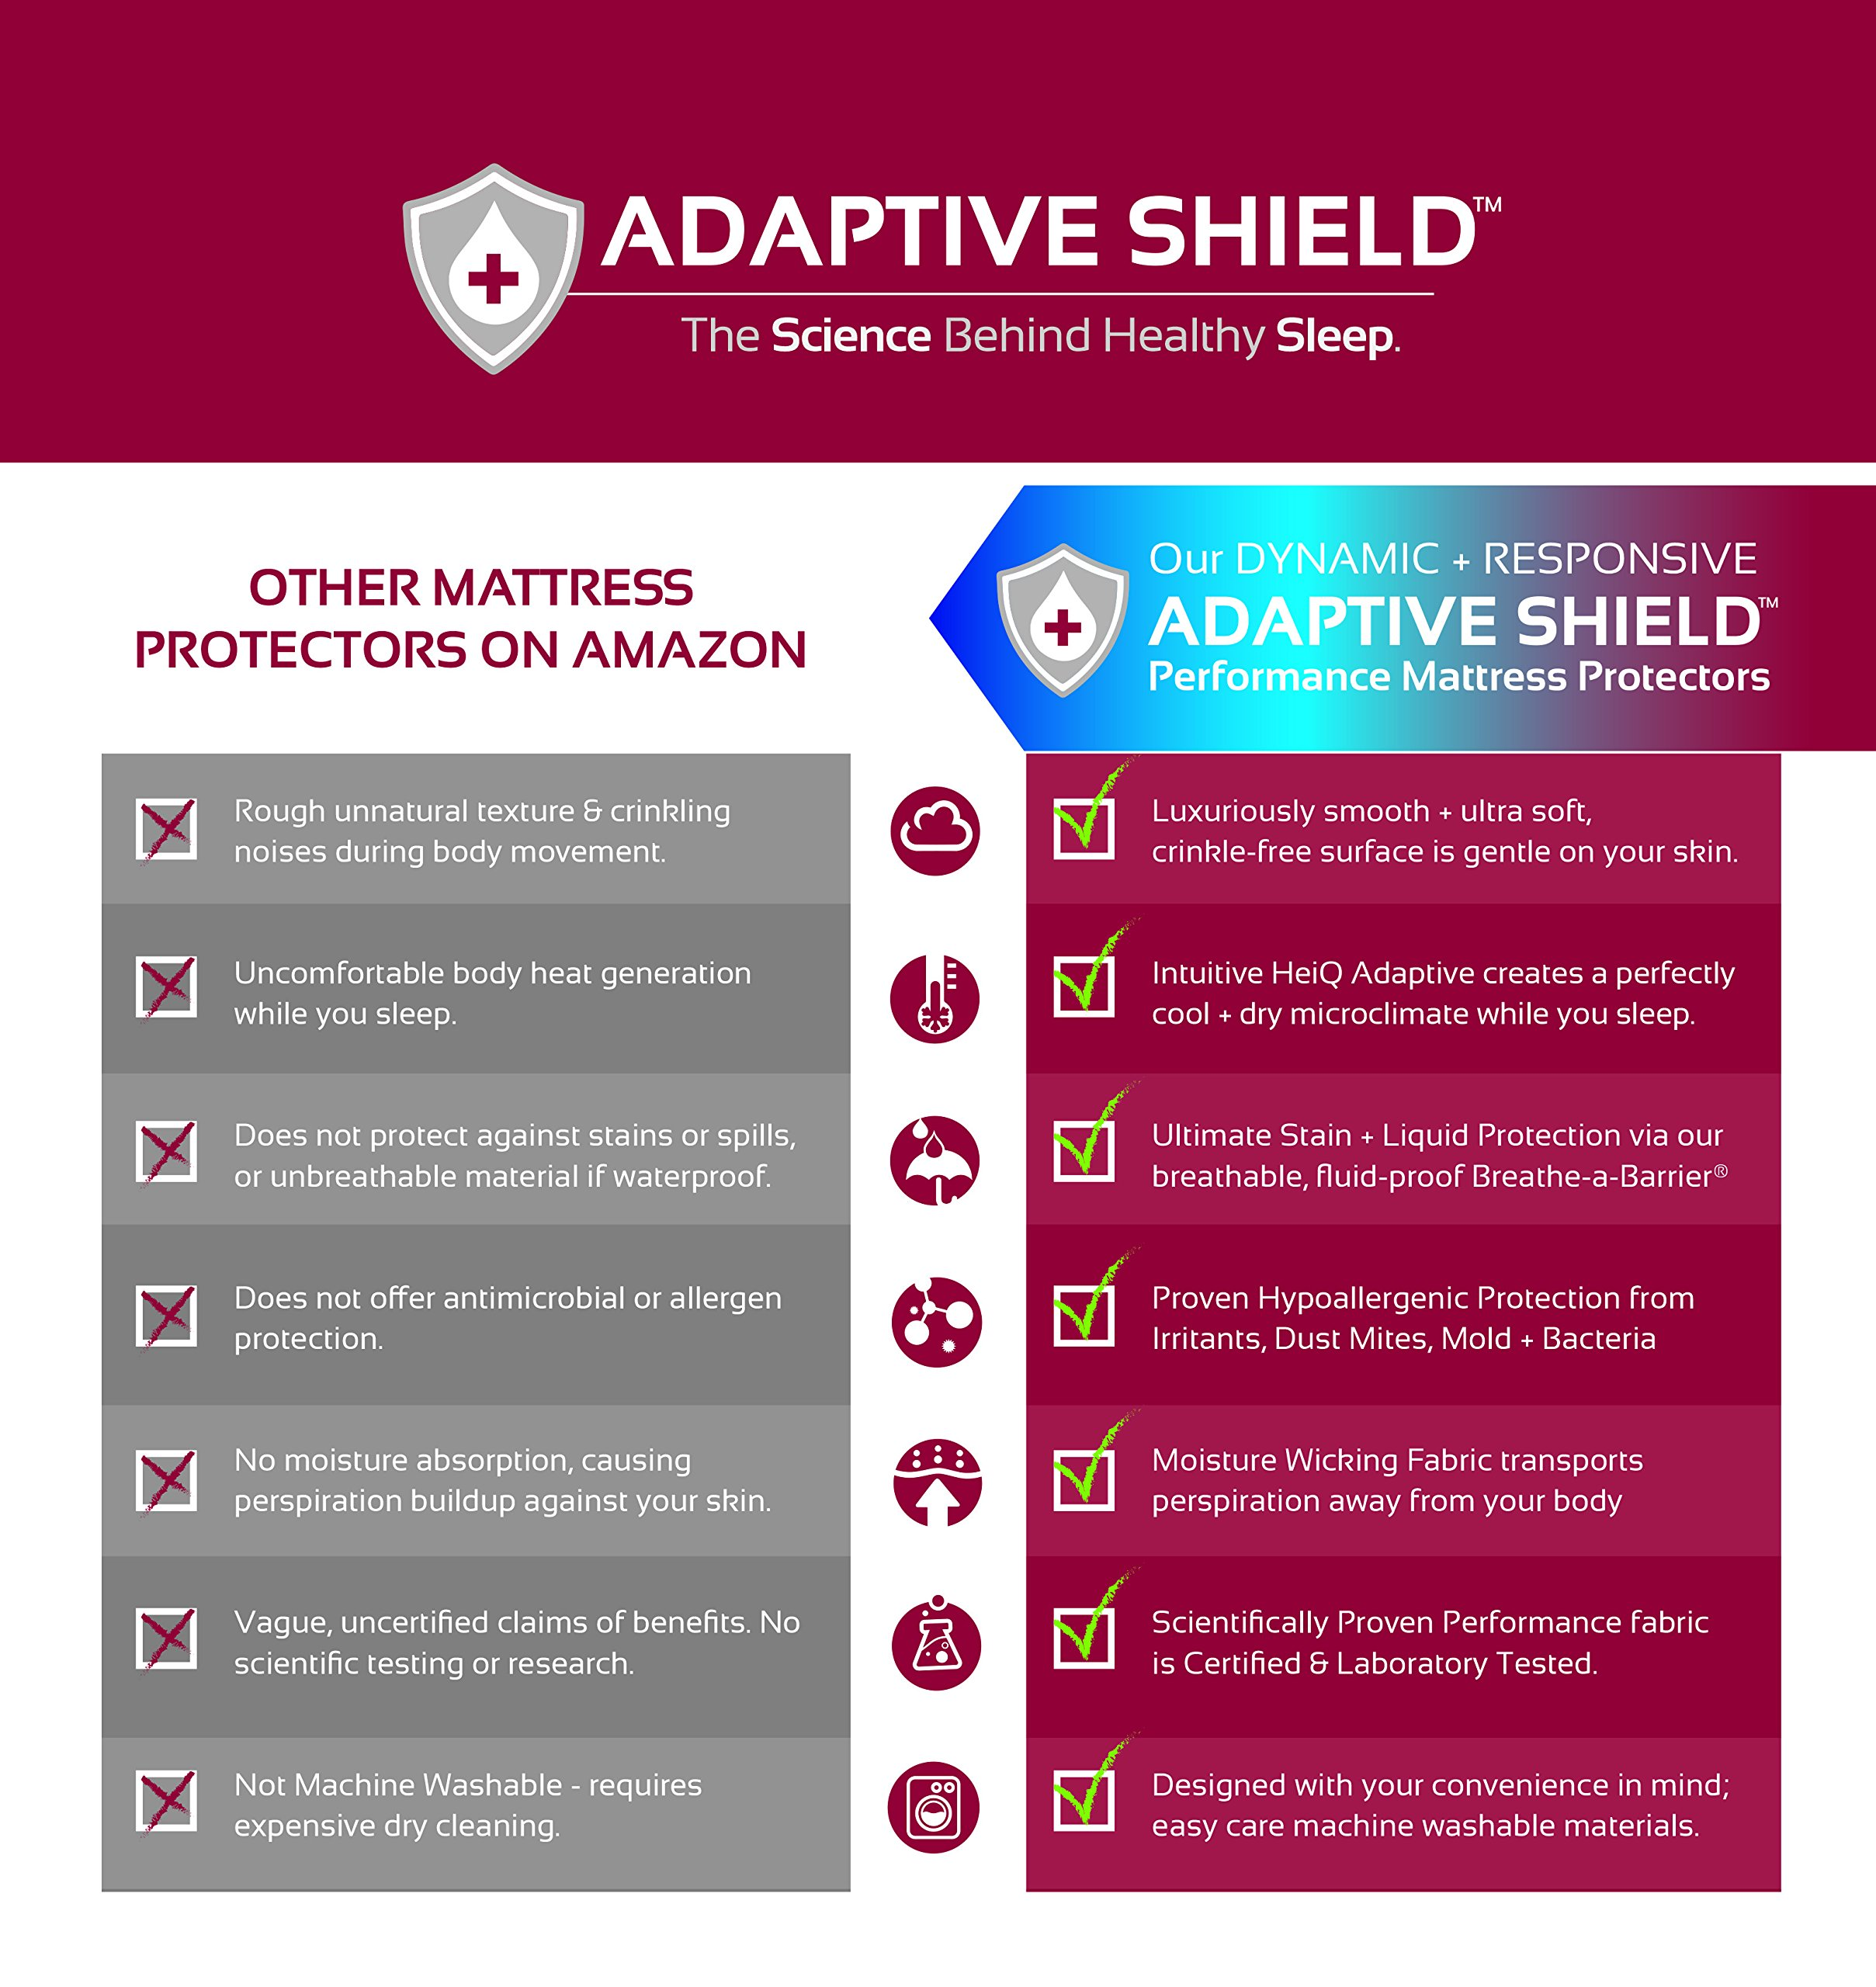 Adaptive Shield Premium Performance Mattress Protector - Lab Tested Allergy Free and Waterproof, Vinyl Free Noiseless Sleep, Crinkle Free, Machine Washable, and Compatible with All Mattresses (King) by Adaptive Shield, Inc. (Image #6)